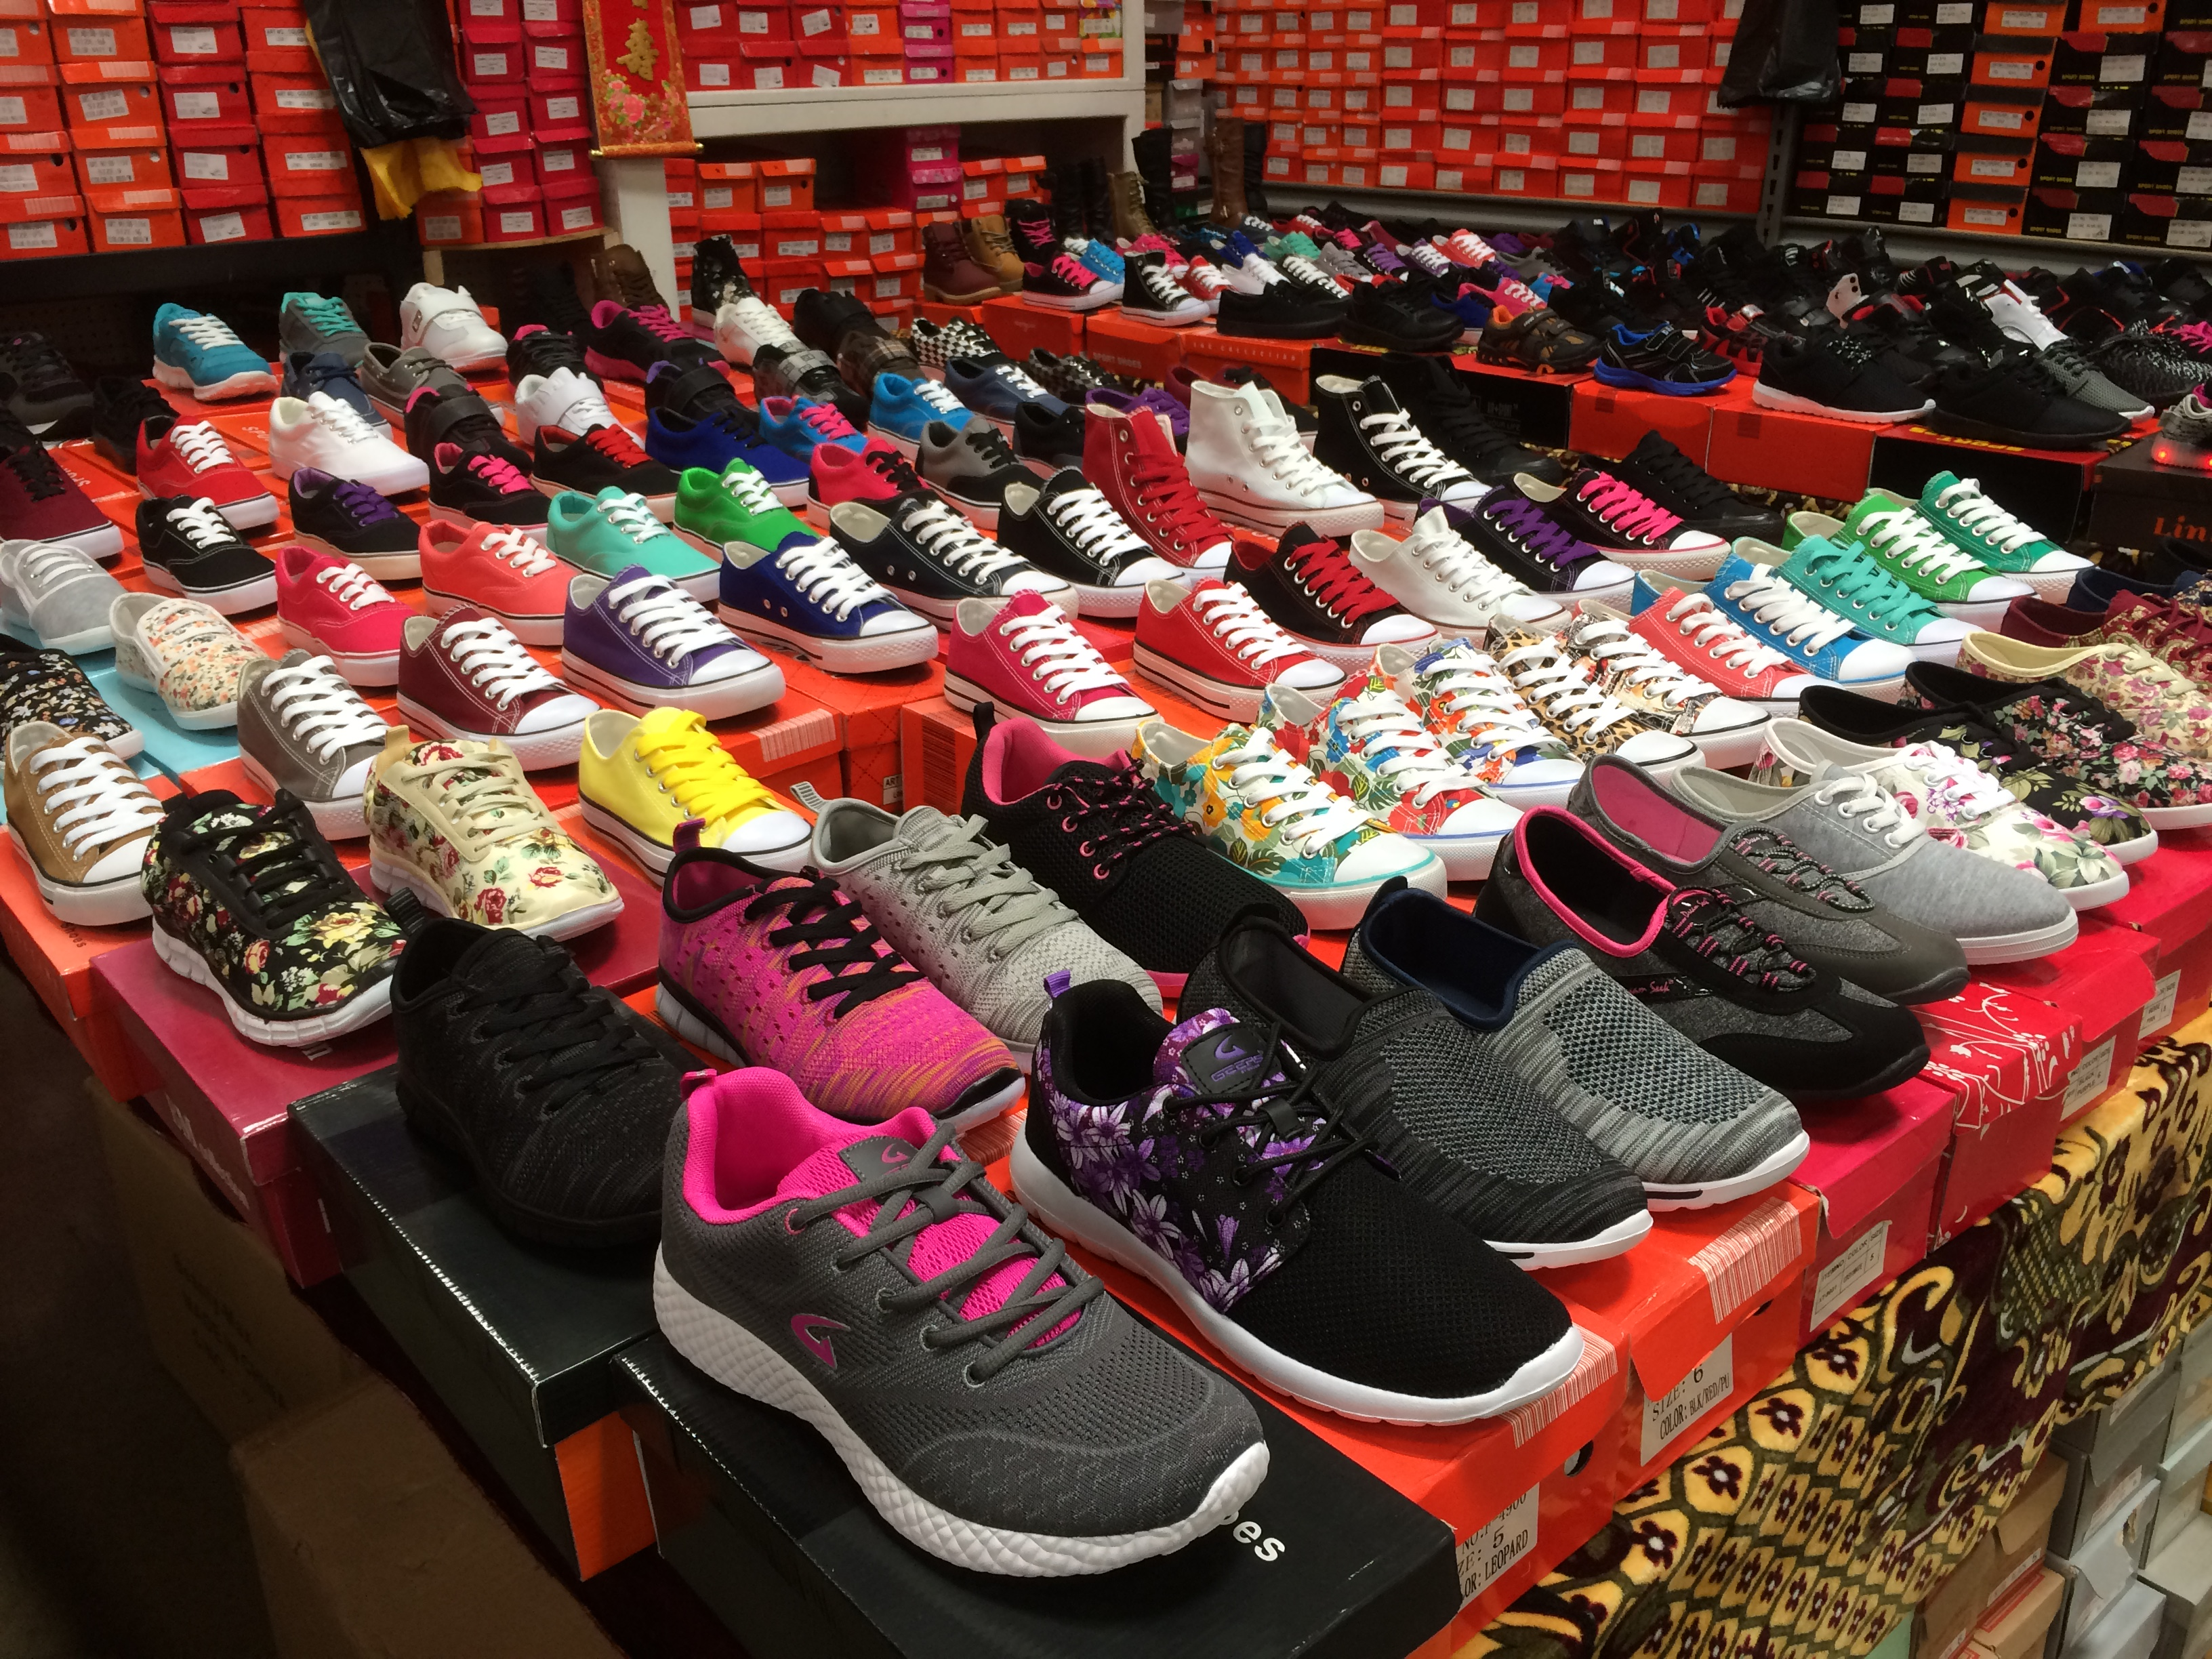 70d7bc7f5b38 shoe-queen-shopsmart-sacramento-all-the-latest-sneakers-and-dress-shoes -for-men-women-and-children13